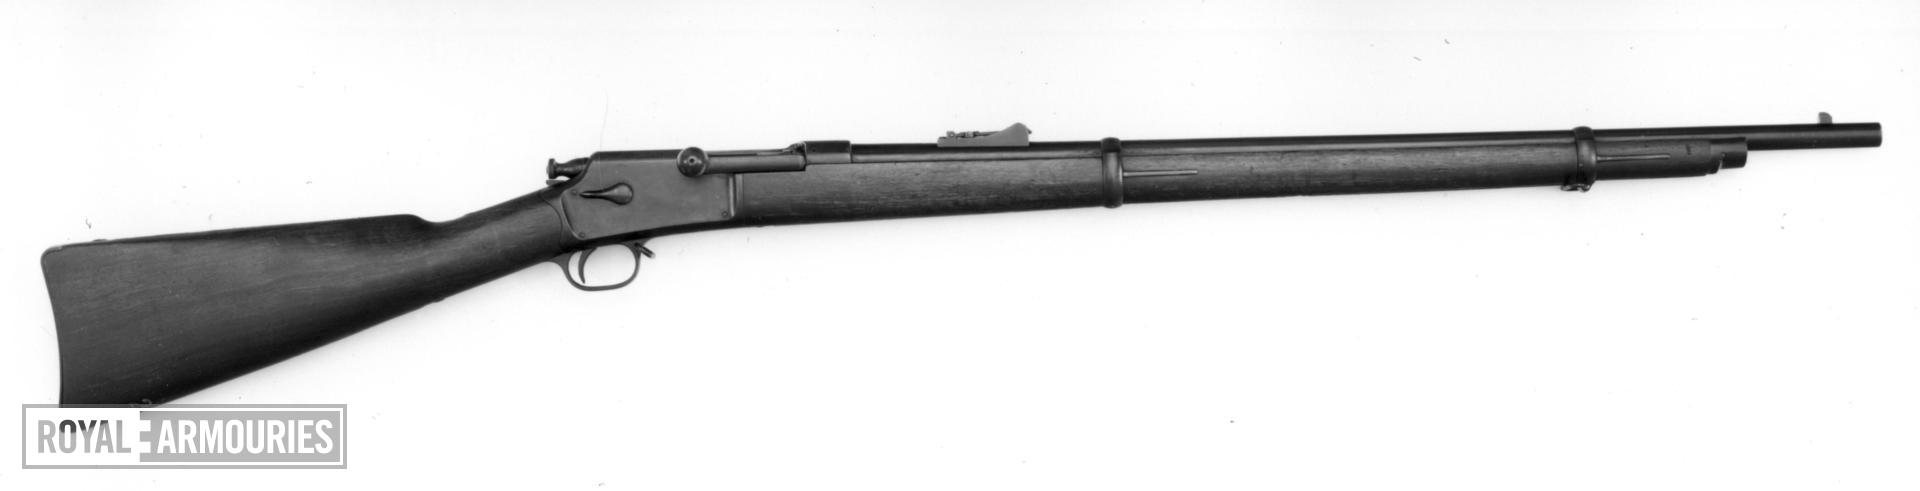 Centrefire bolt-action magazine rifle - Model 1883 Hotchkiss By Winchester